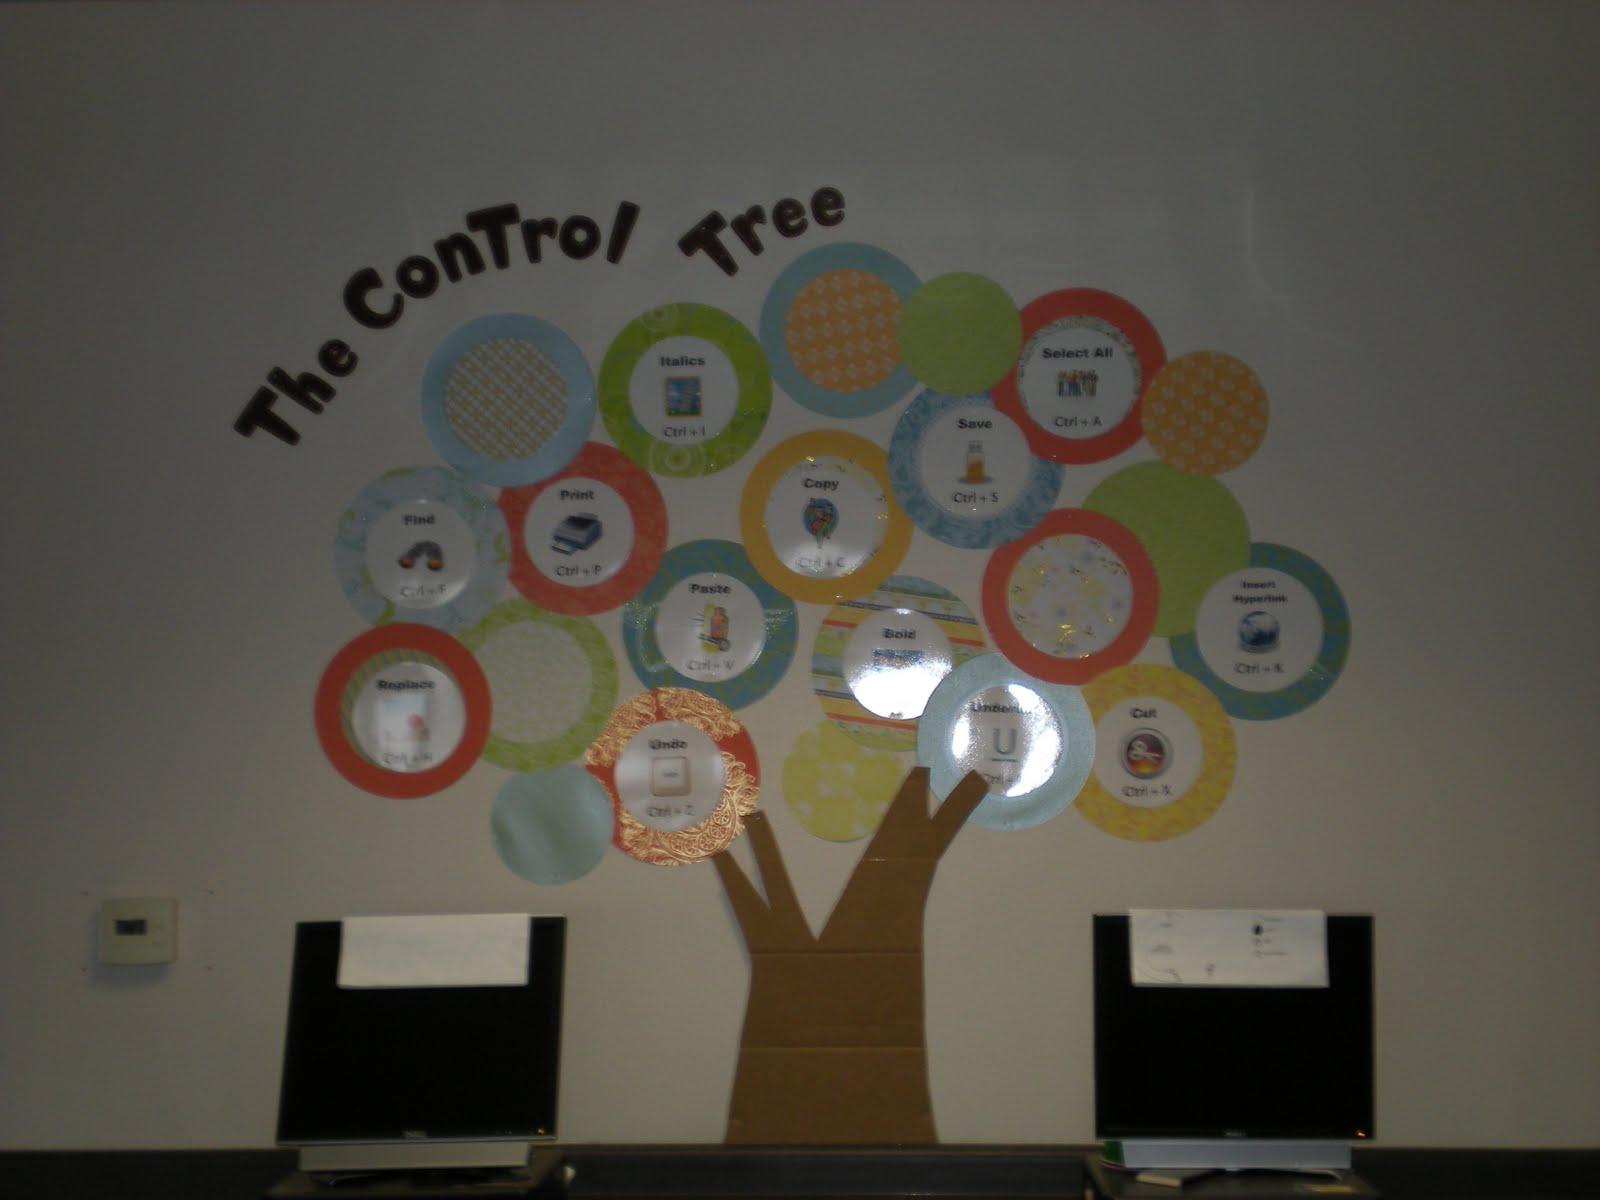 Awe Inspiring Computer Lab Bulletin Board Ideas Connecting The Bots Largest Home Design Picture Inspirations Pitcheantrous